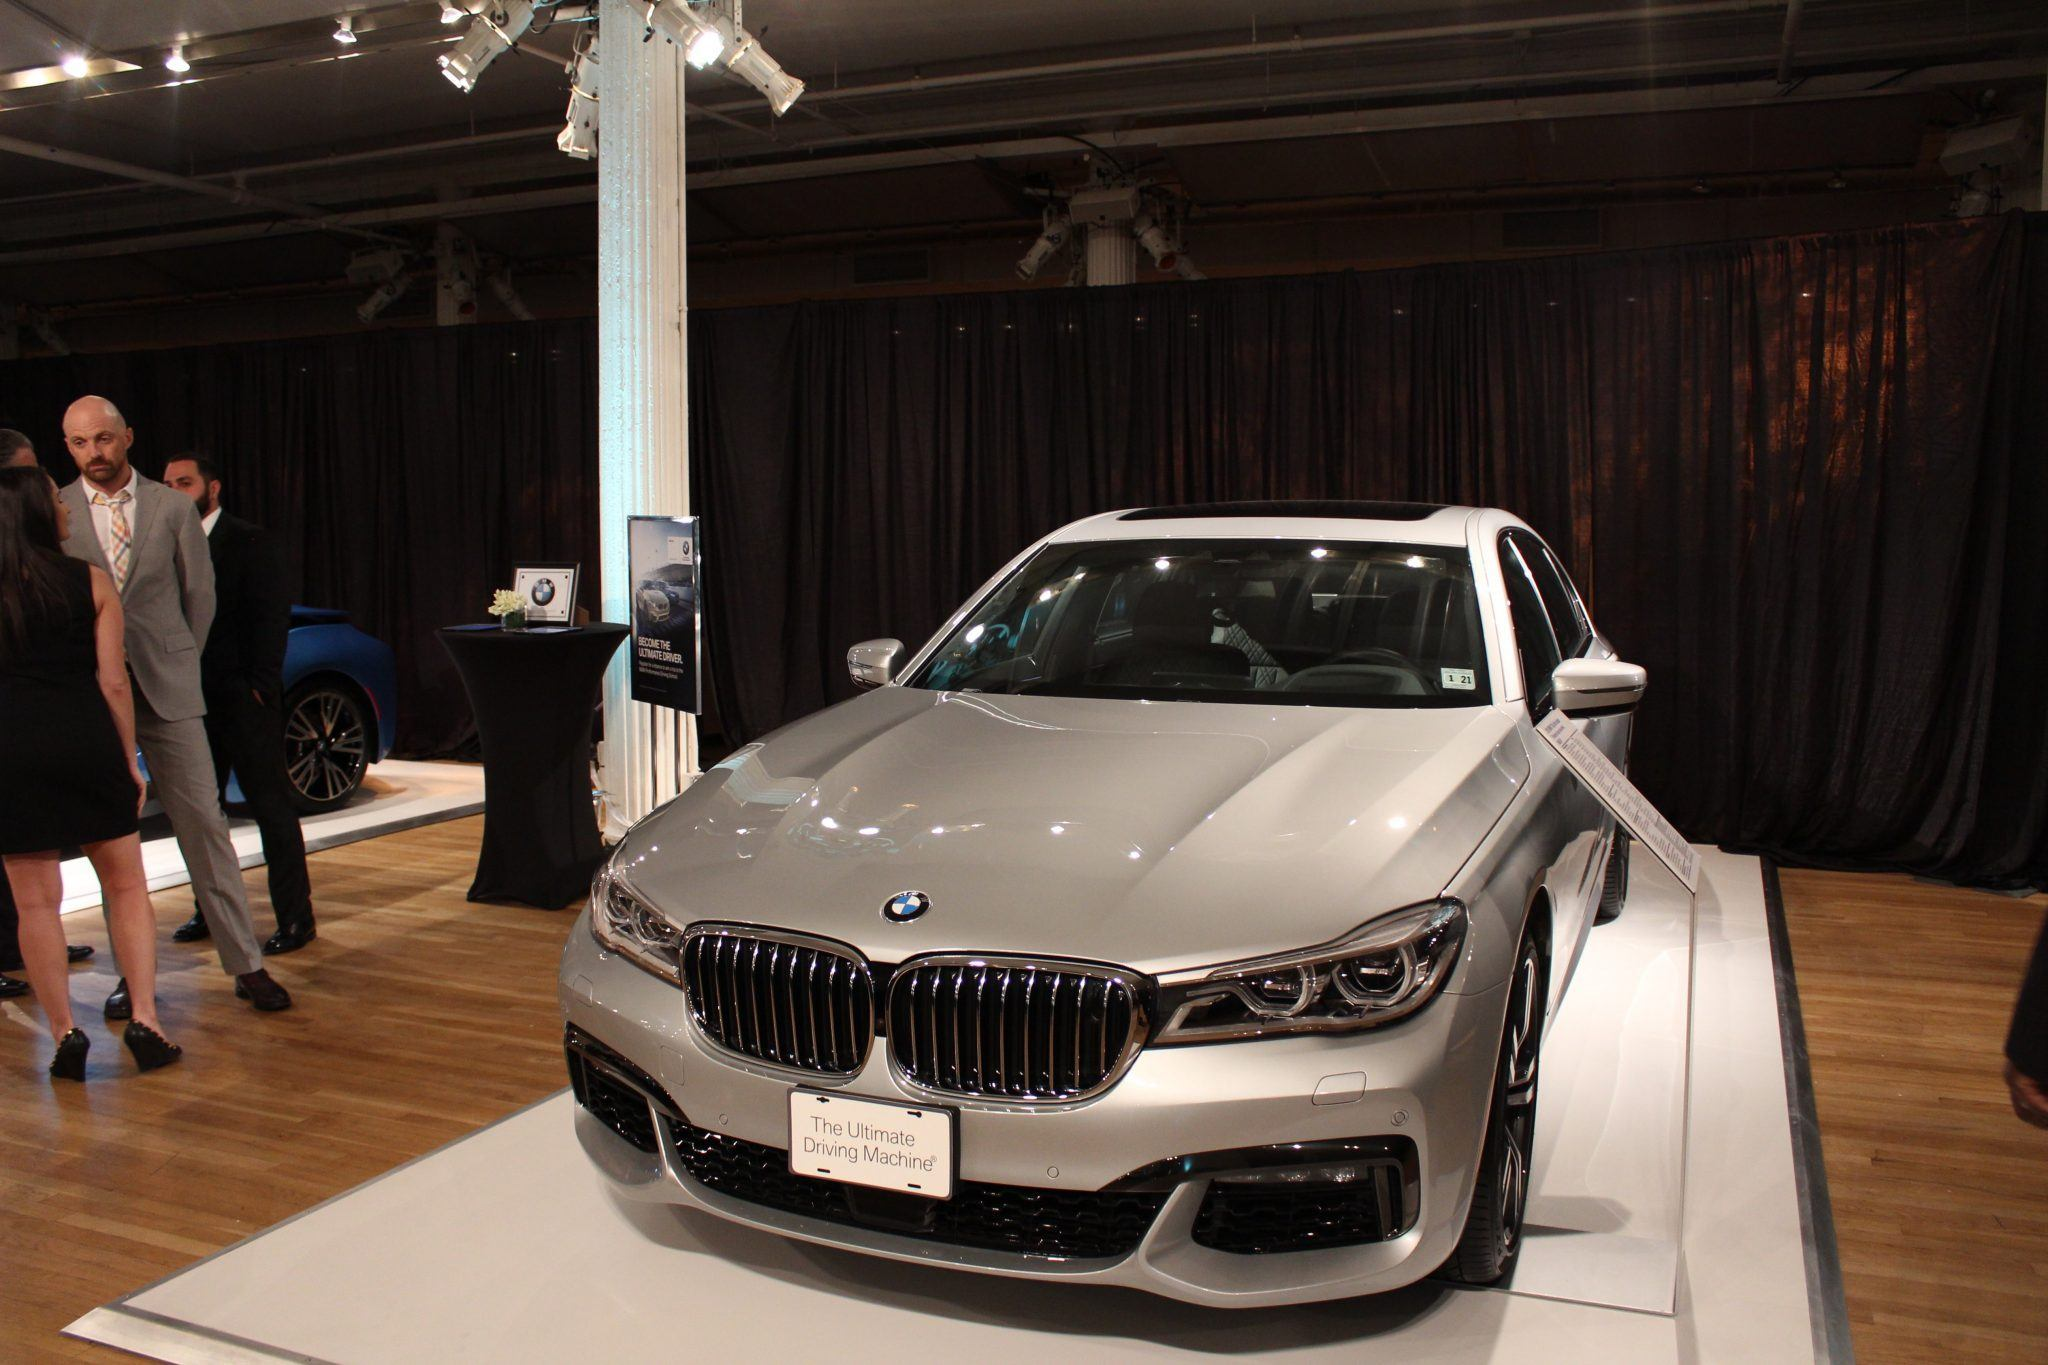 BMW Luxury Technology Show